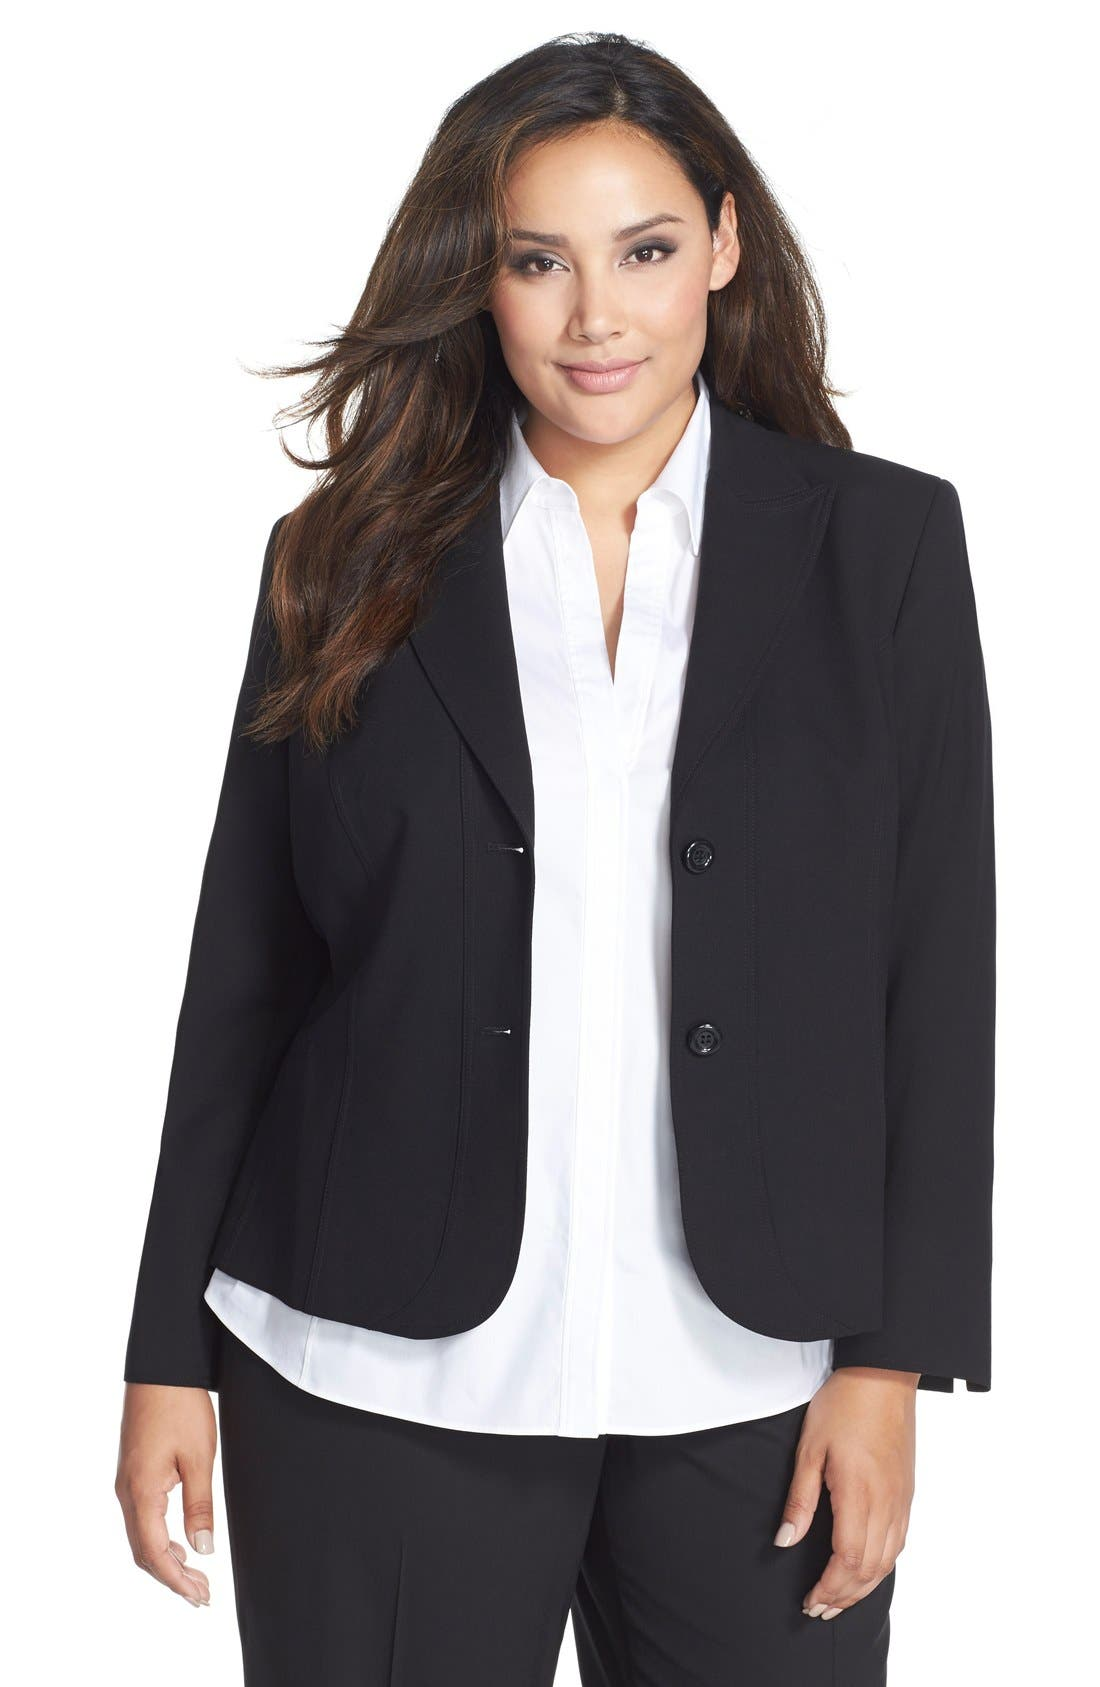 'Gladstone' Stretch Wool Jacket,                             Alternate thumbnail 6, color,                             001